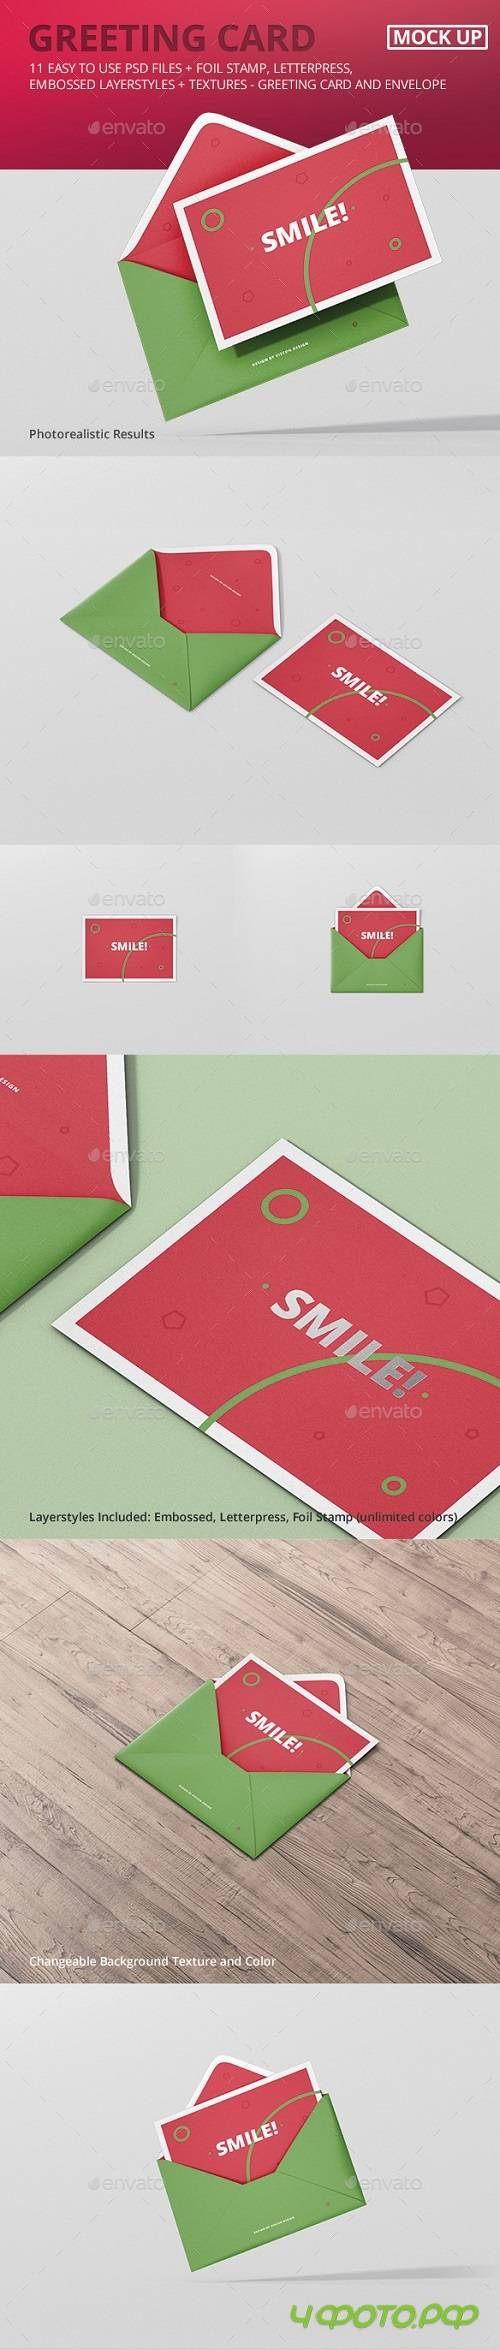 Greeting Card Mockup with Envelope - 21086283